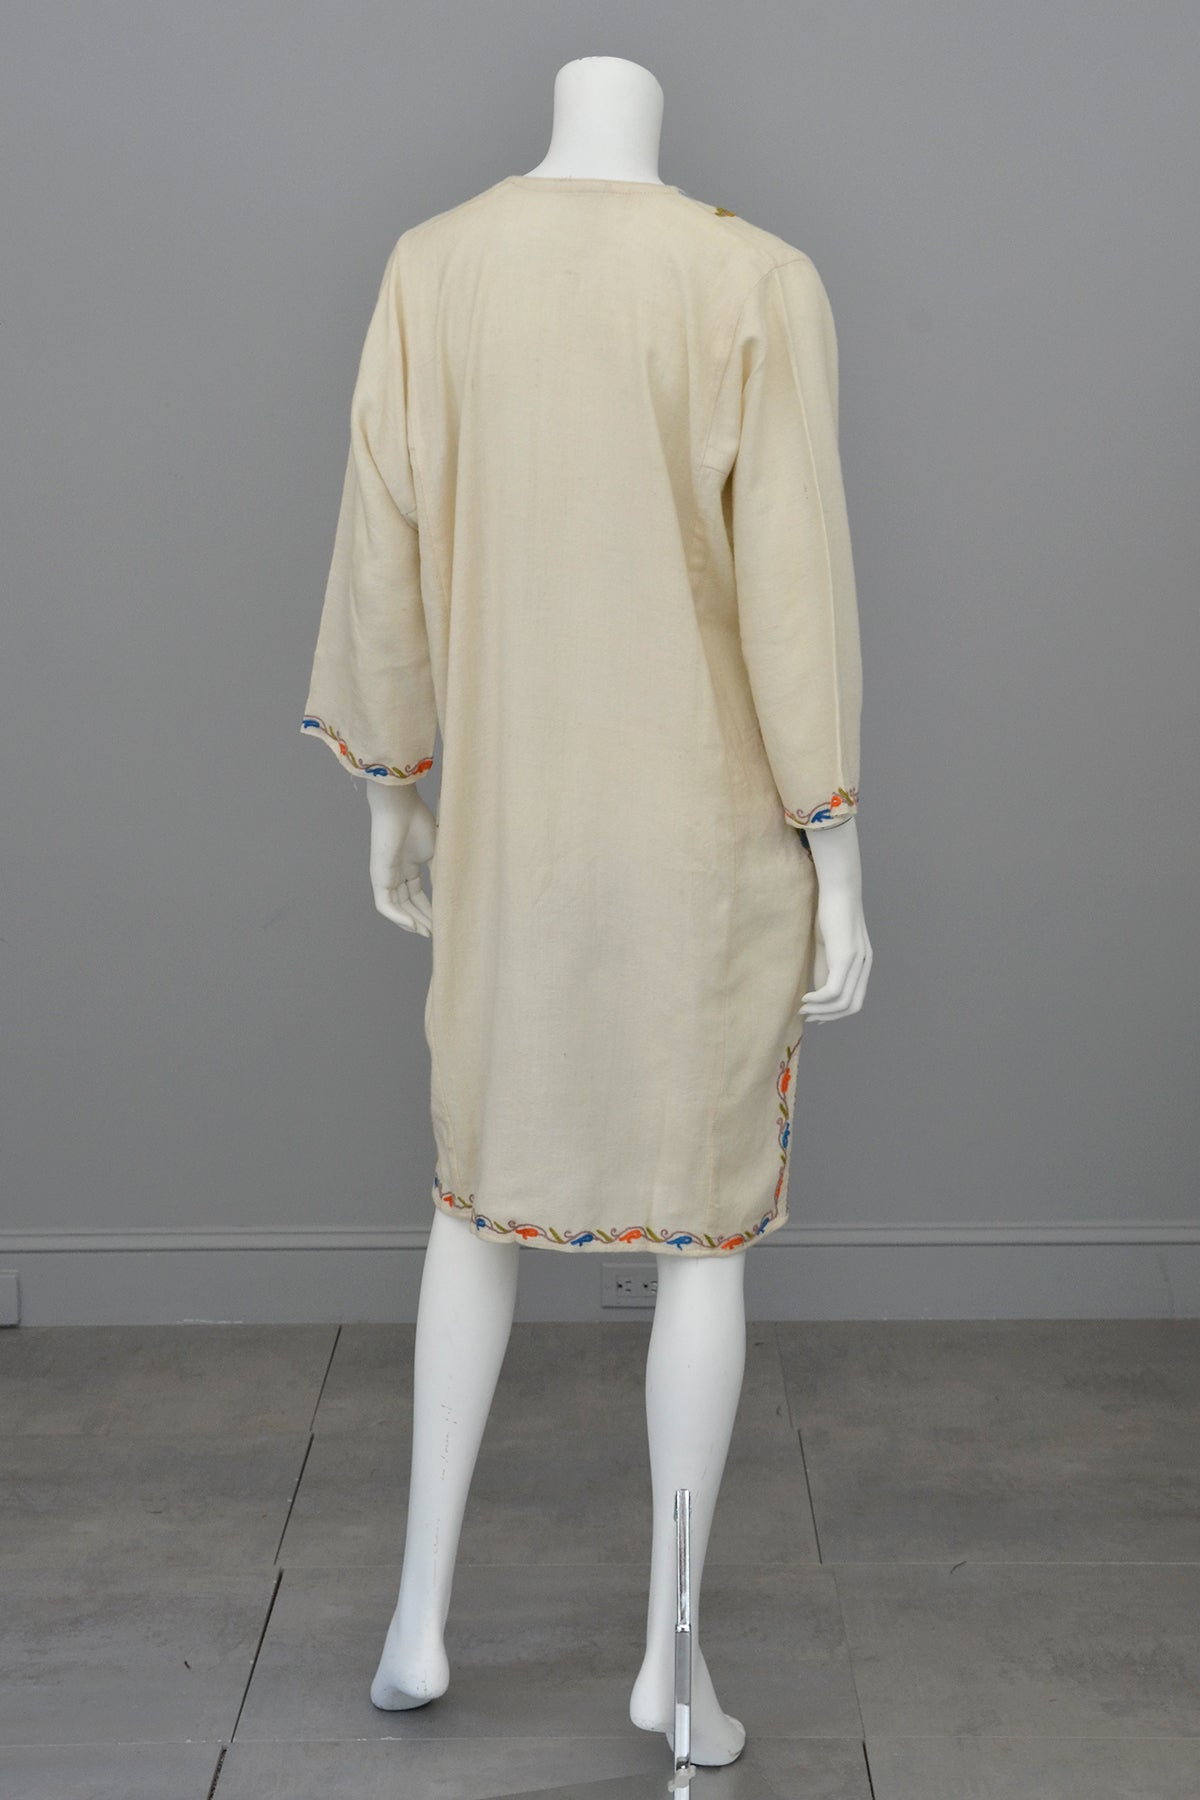 1970s Embroidered Off-White Wool Tunic Caftan Dress, Size L